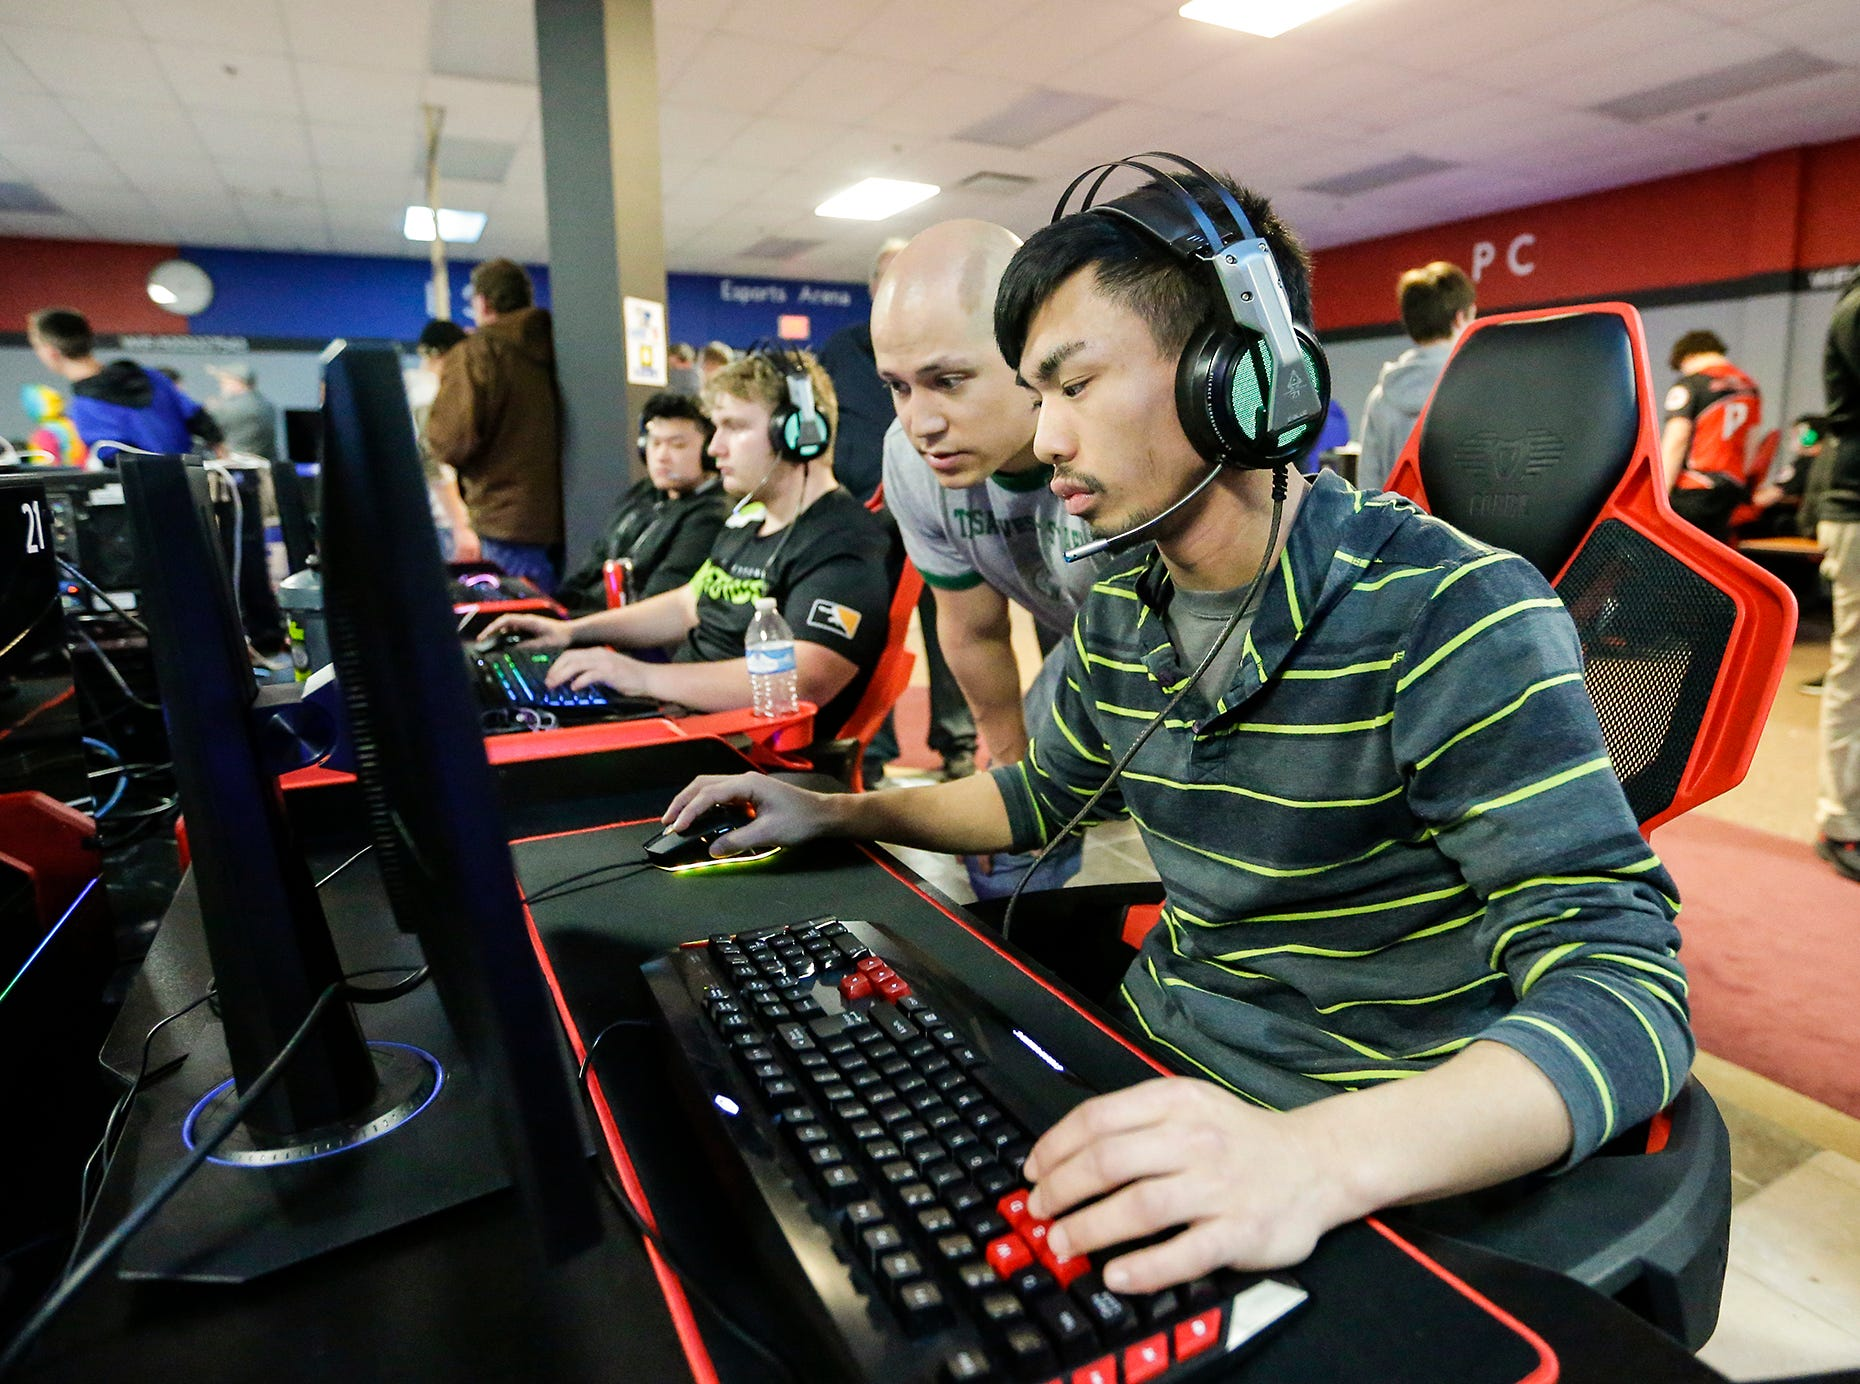 Game coach Bobby Dusel helps John Delacruze of Wauwautosa at the Wisconsin High School Esports Association's State Championship Saturday, April 13, 2019 at Game On in Fond du Lac Wisconsin. Teams compete in 4 games during the event. Overwatch, Rocket League, League of Legends, and Smash Ultimate. Doug Raflik/USA TODAY NETWORK-Wisconsin